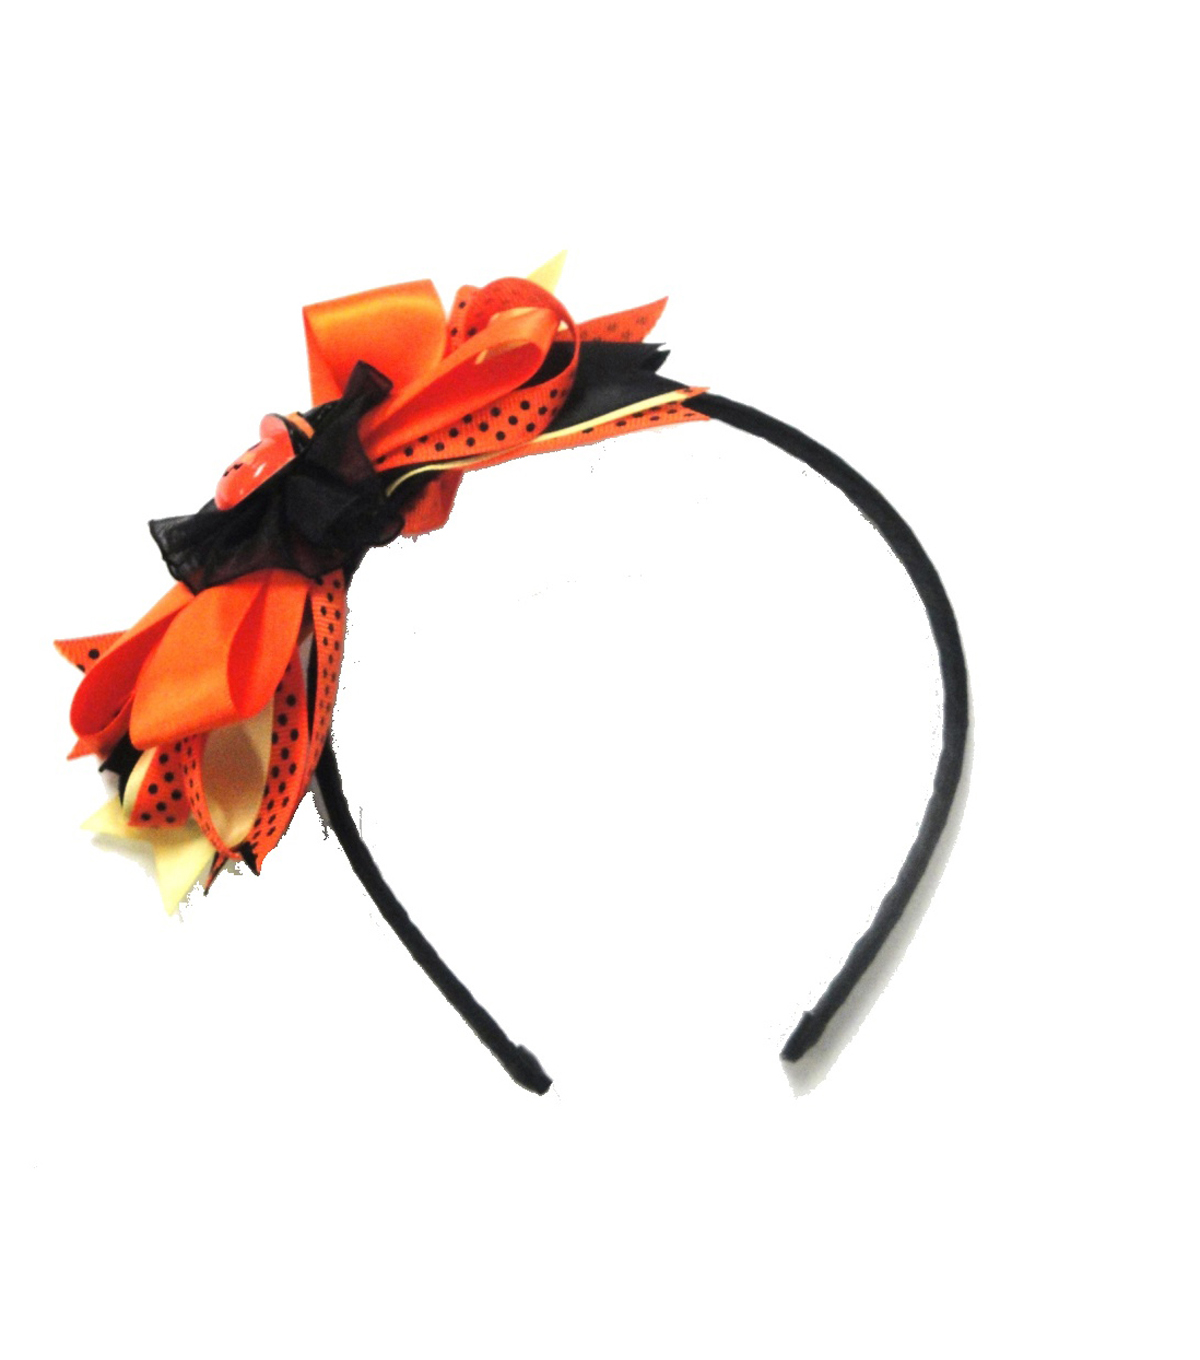 Maker's Halloween Pumpkin Headband with Ribbons